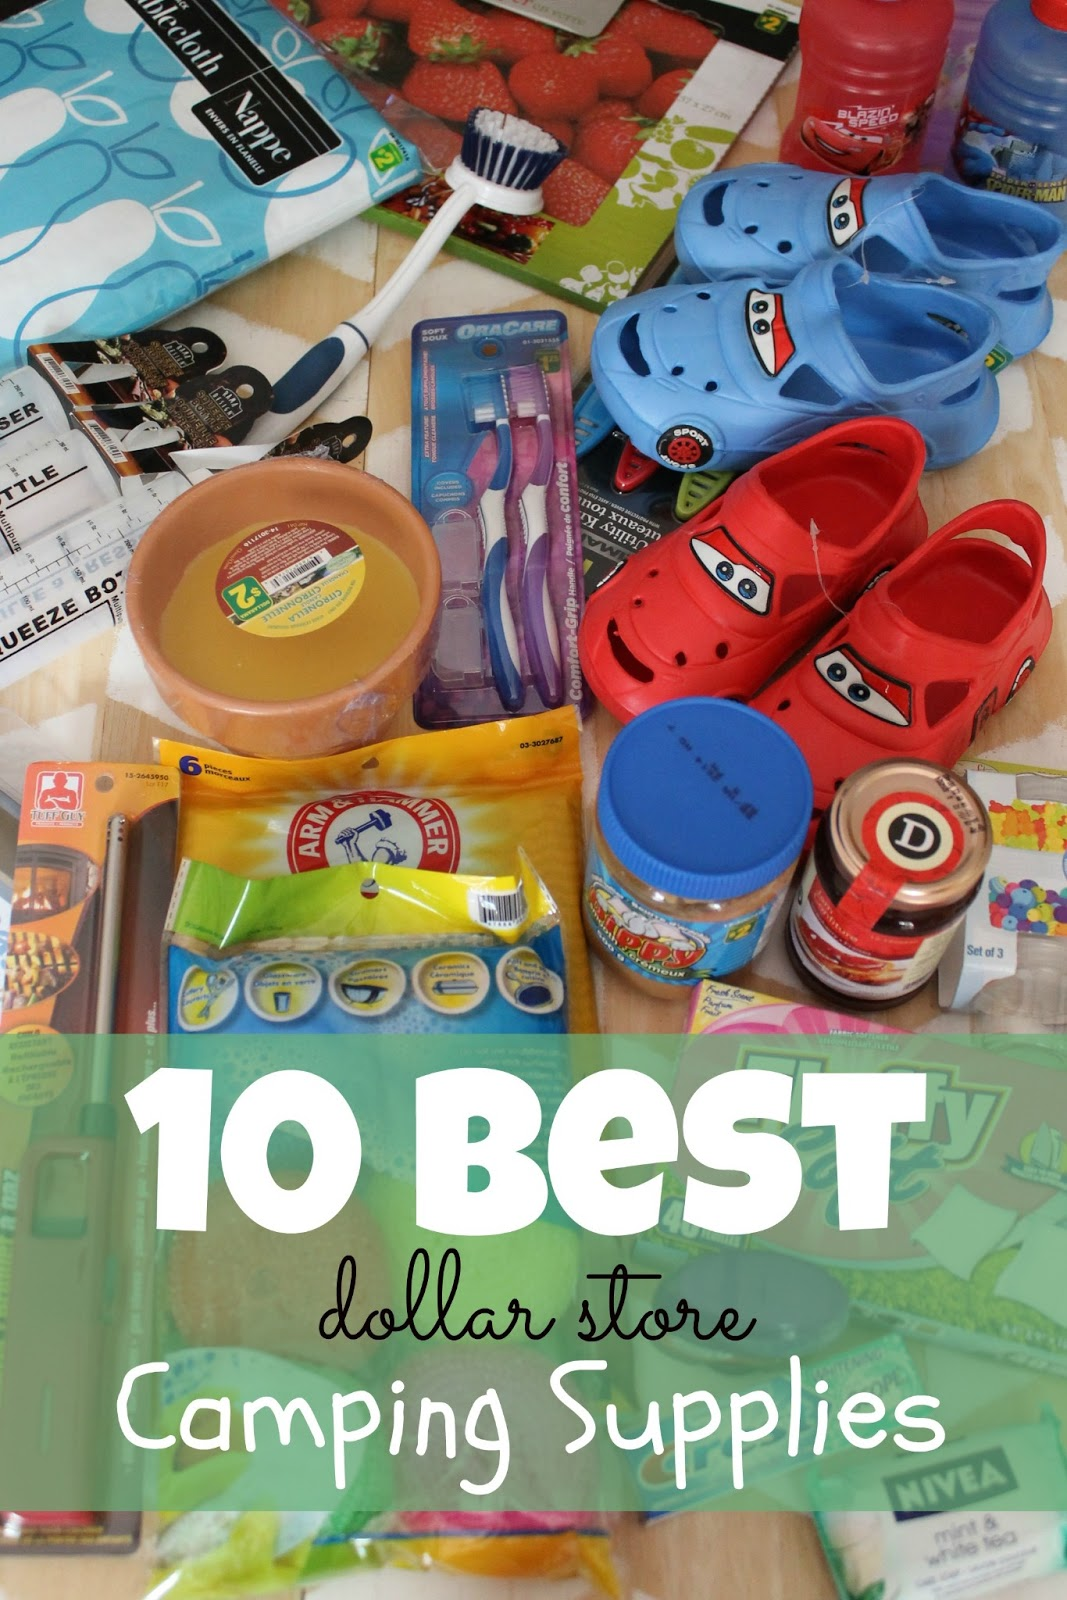 10 Best Camping Supplies » Dragonfly Designs